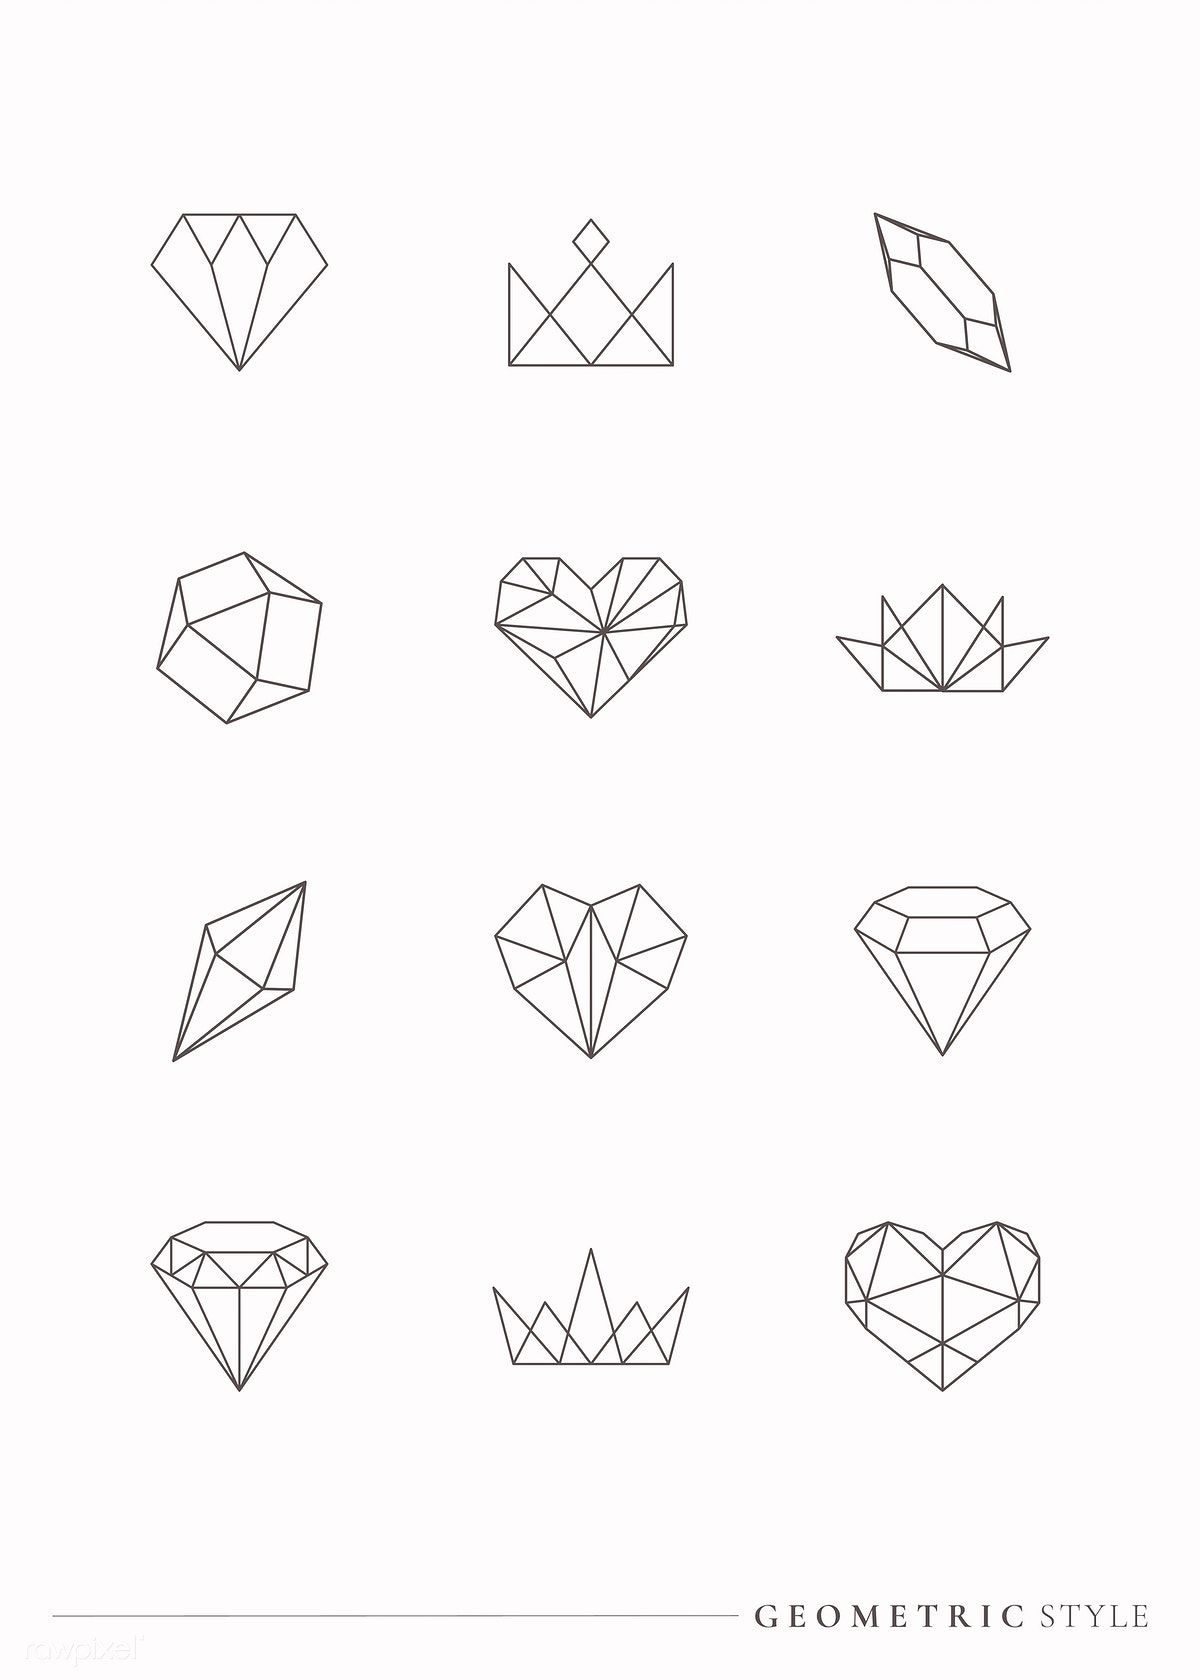 Linear geometric design element collection vectors | free image by rawpixel.com / Aew